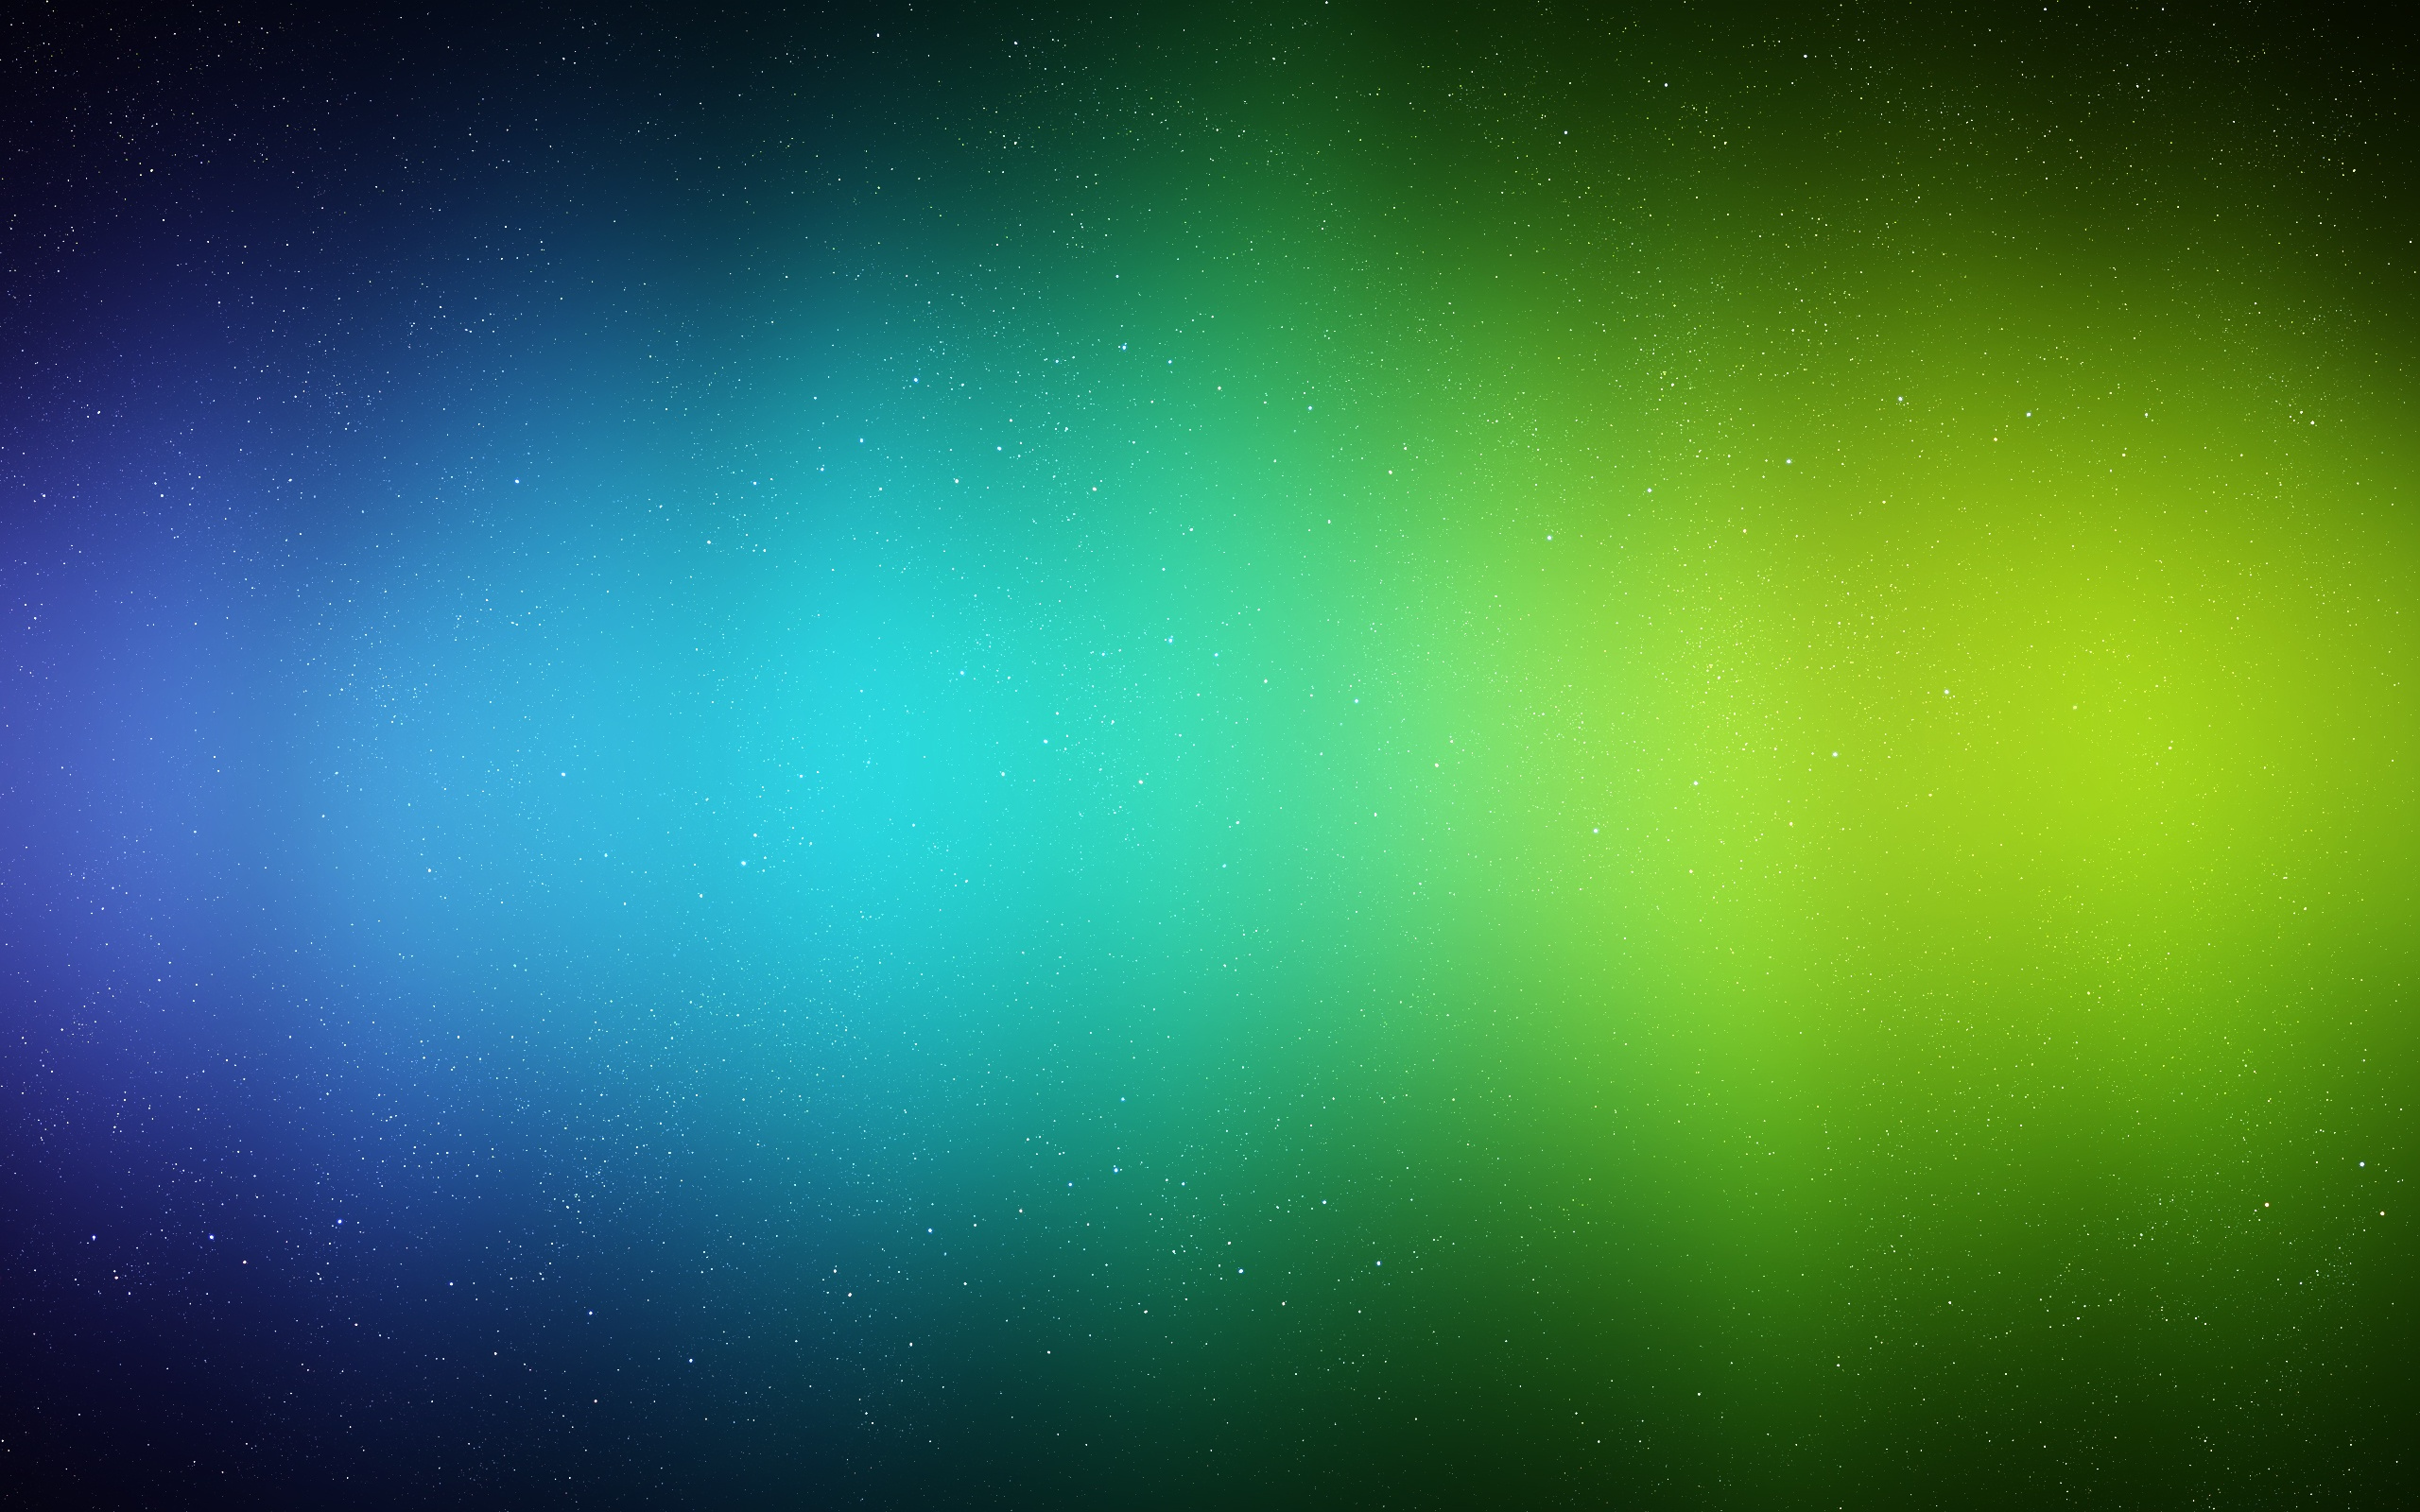 Background Wallpaper 22919 2560x1600 px ~ HDWallSource.com